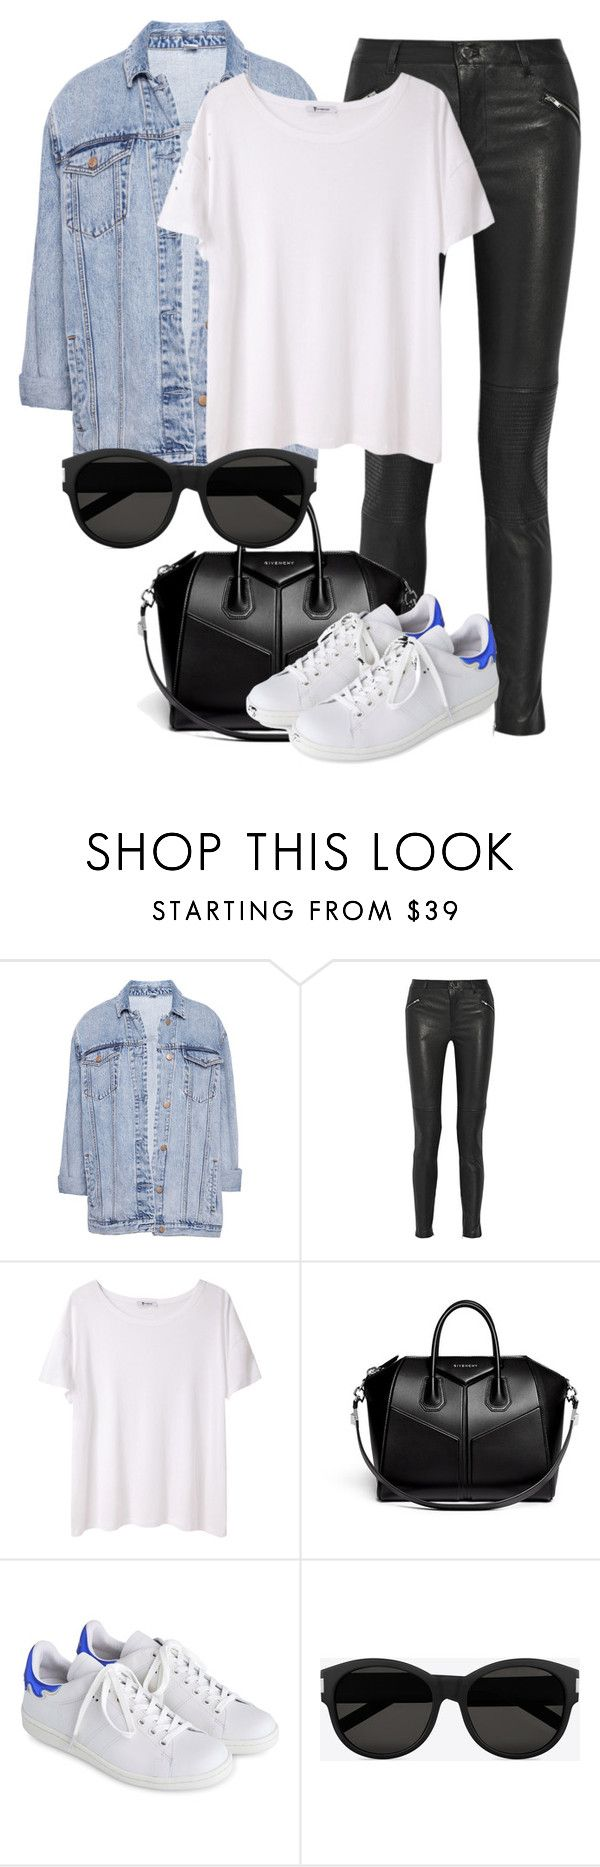 """Untitled #2000"" by annielizjung ❤ liked on Polyvore featuring Pull&Bear, BLK DNM, T By Alexander Wang, Givenchy, Isabel Marant and Yves Saint Laurent"